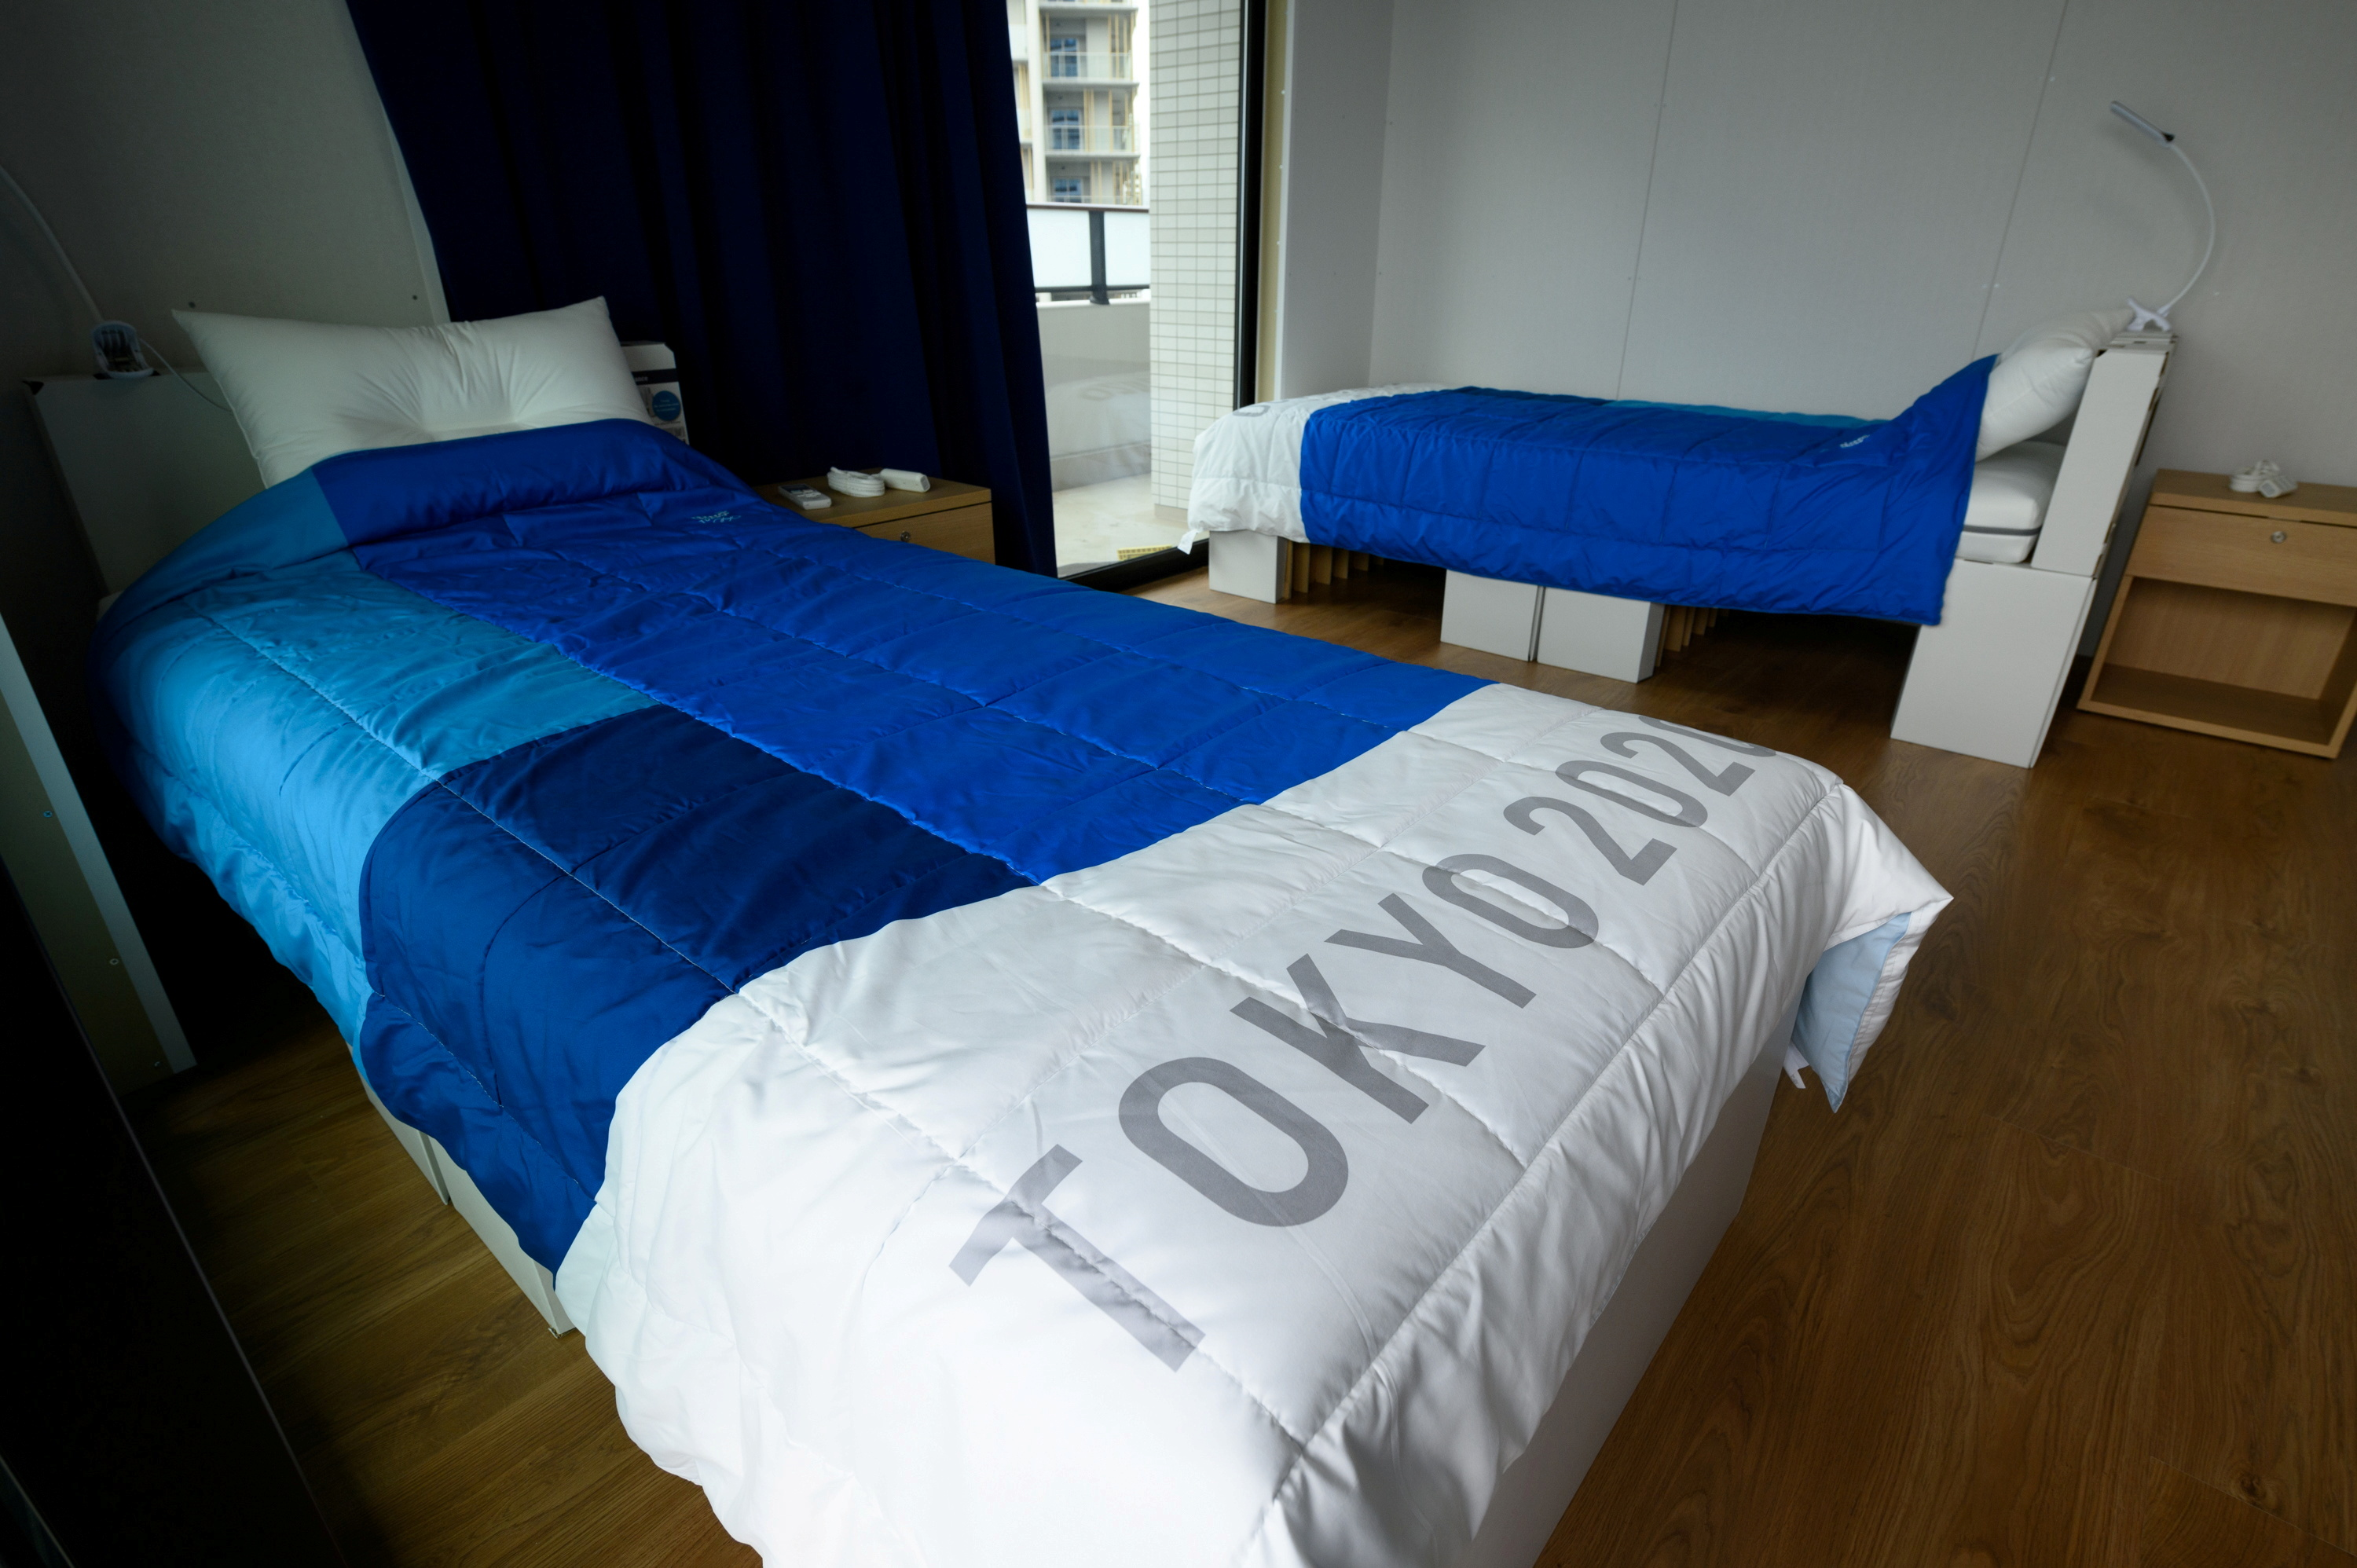 Recyclable cardboard beds and mattresses for athletes are pictured during a media tour at the Olympic and Paralympic Village for the Tokyo 2020 Games, in Tokyo, Japan June 20, 2021. Akio Kon/Pool via REUTERS/File Photo